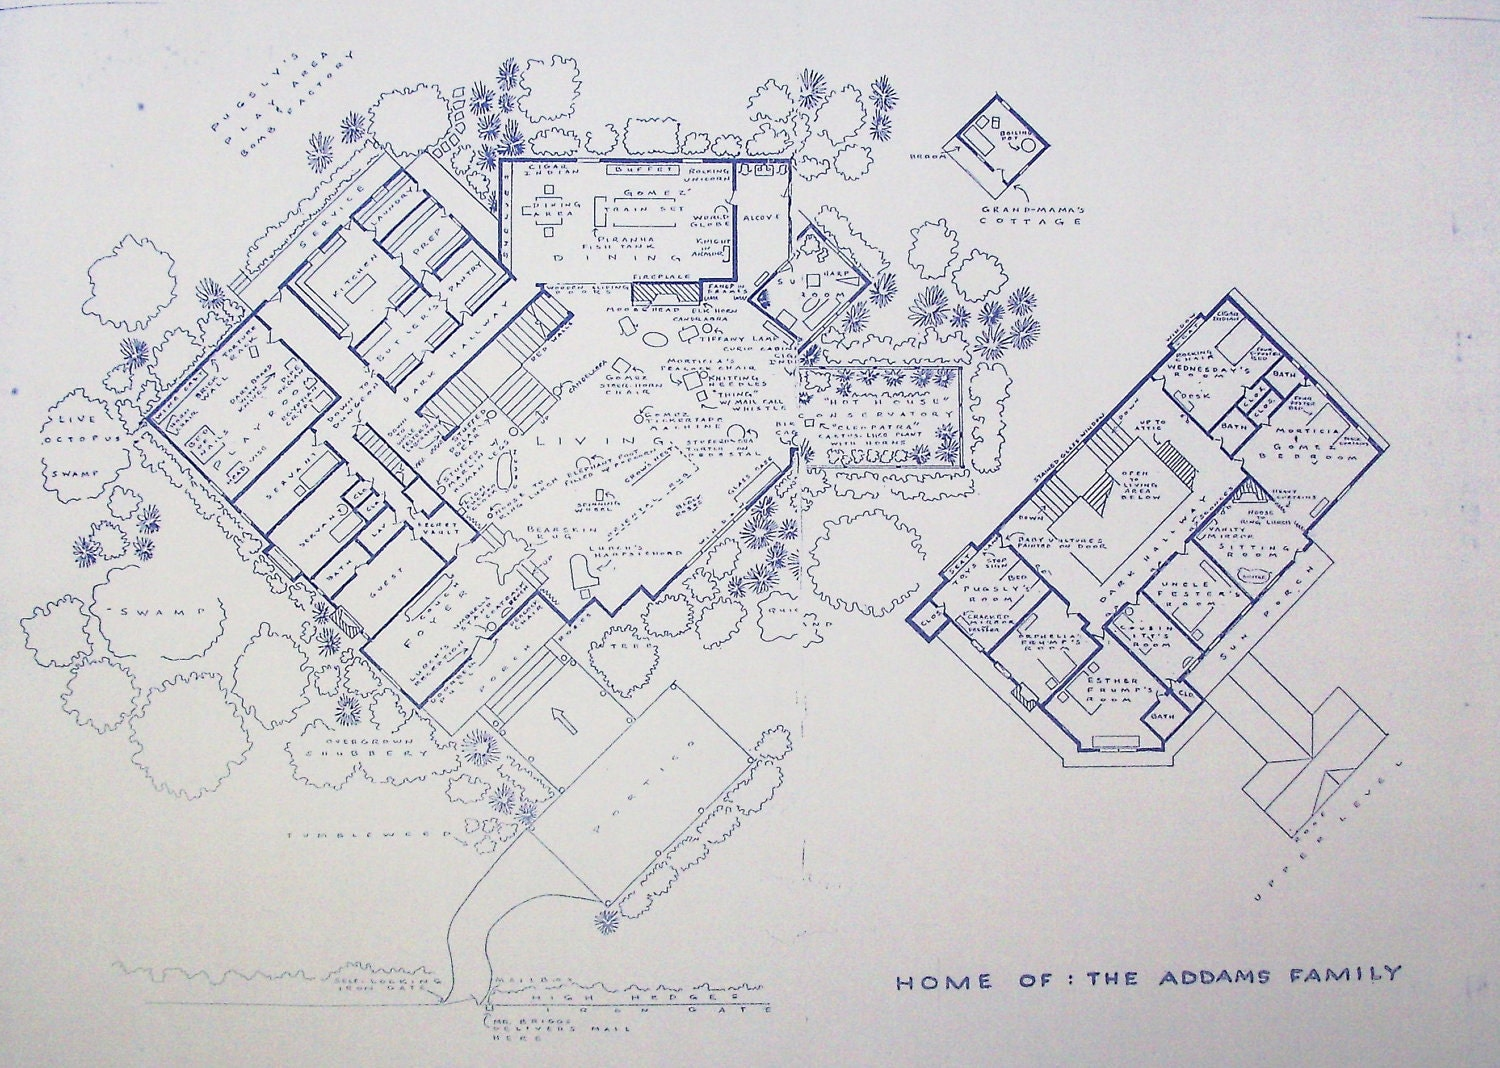 House from addams family tv show blueprint by blueprintplace for Addams family house floor plan